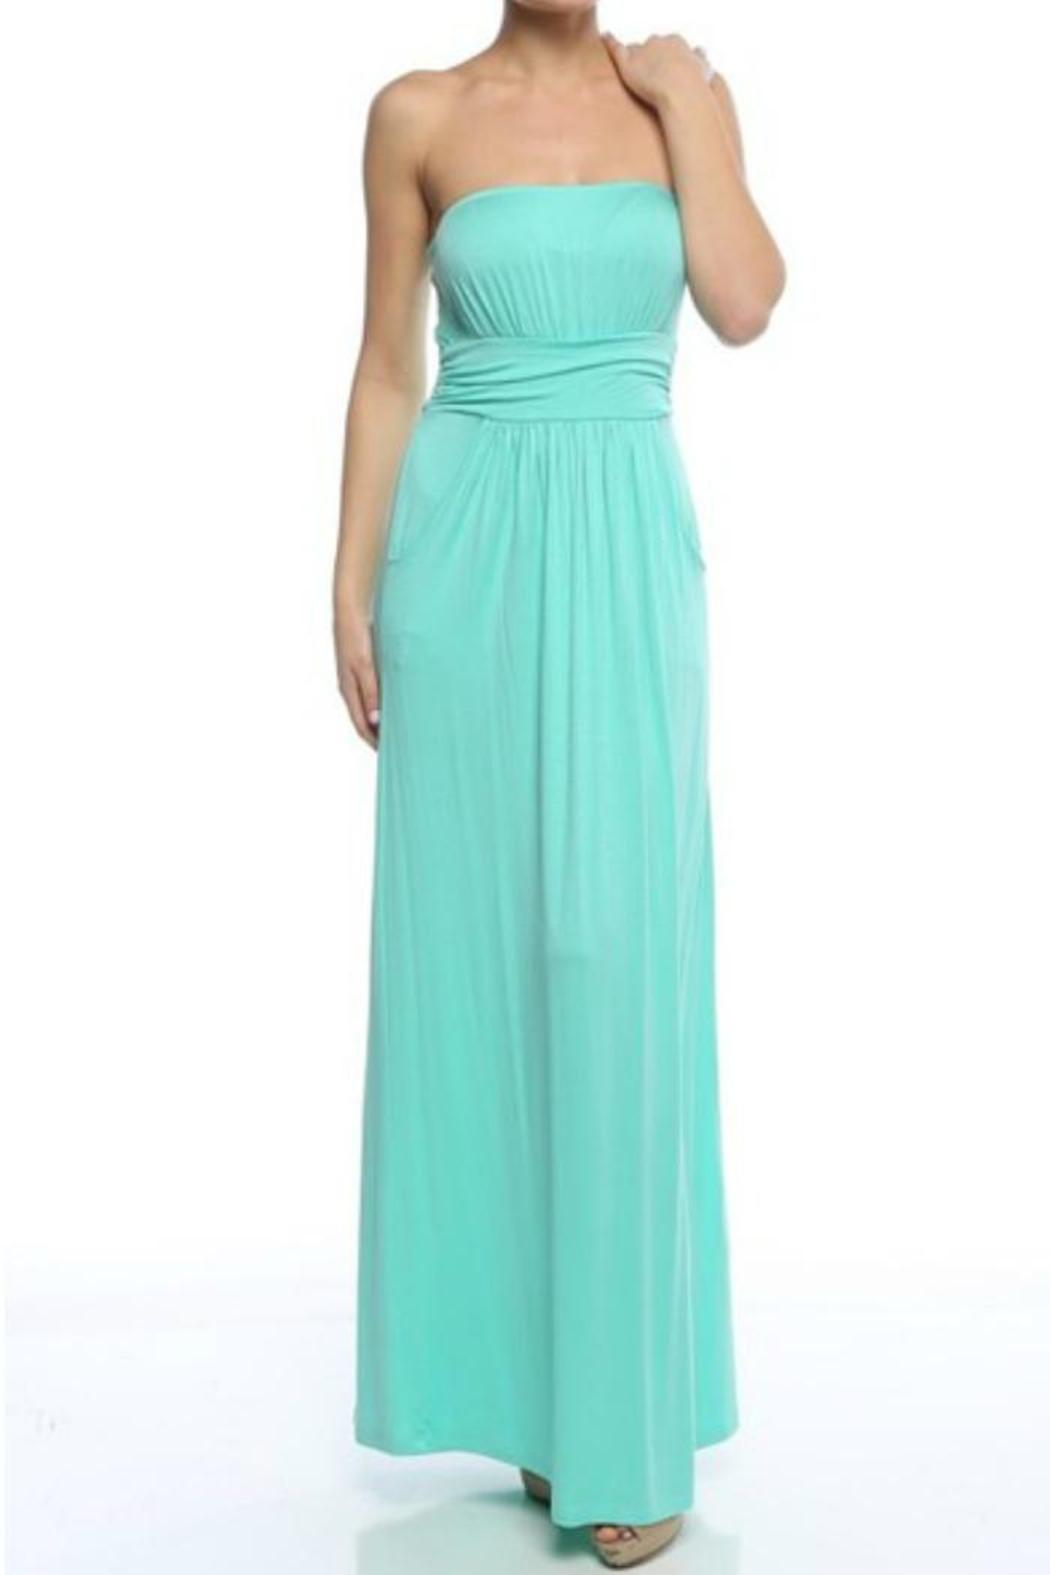 Loila Strapless Maxi Dress from New York by Nouriche — Shoptiques